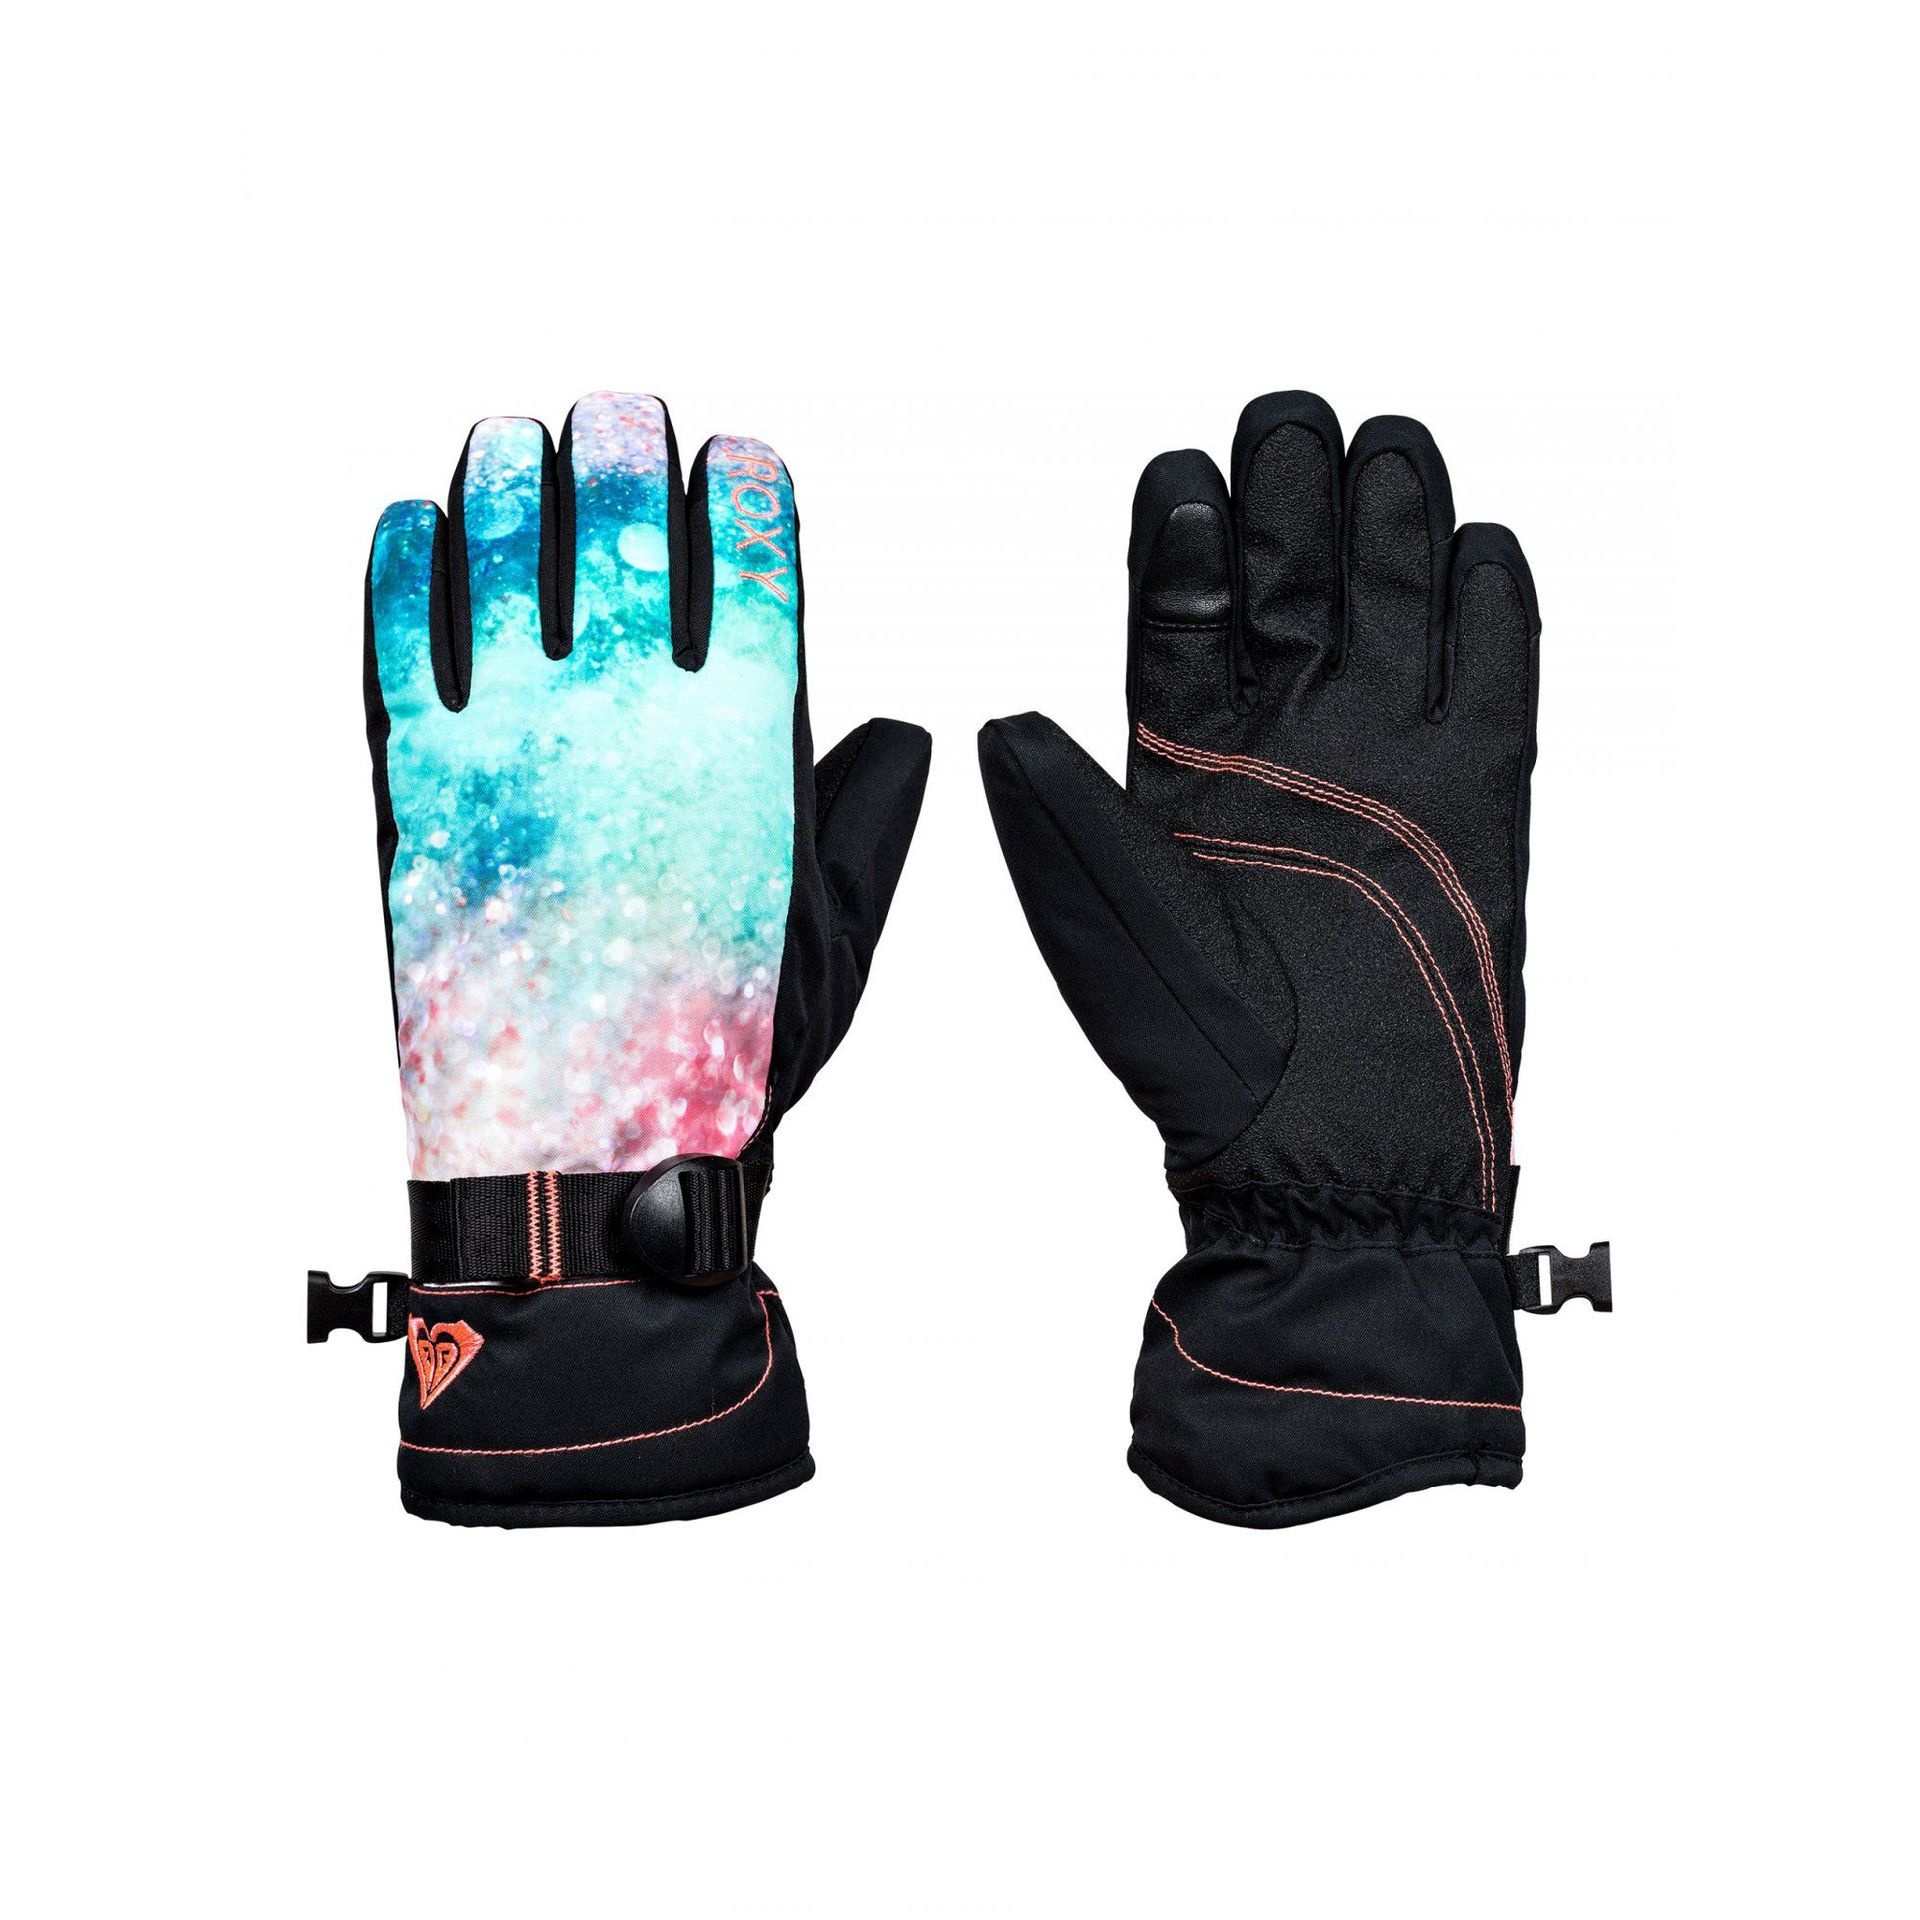 RĘKAWICE ROXY JETTY GIRL GLOVE NKN8